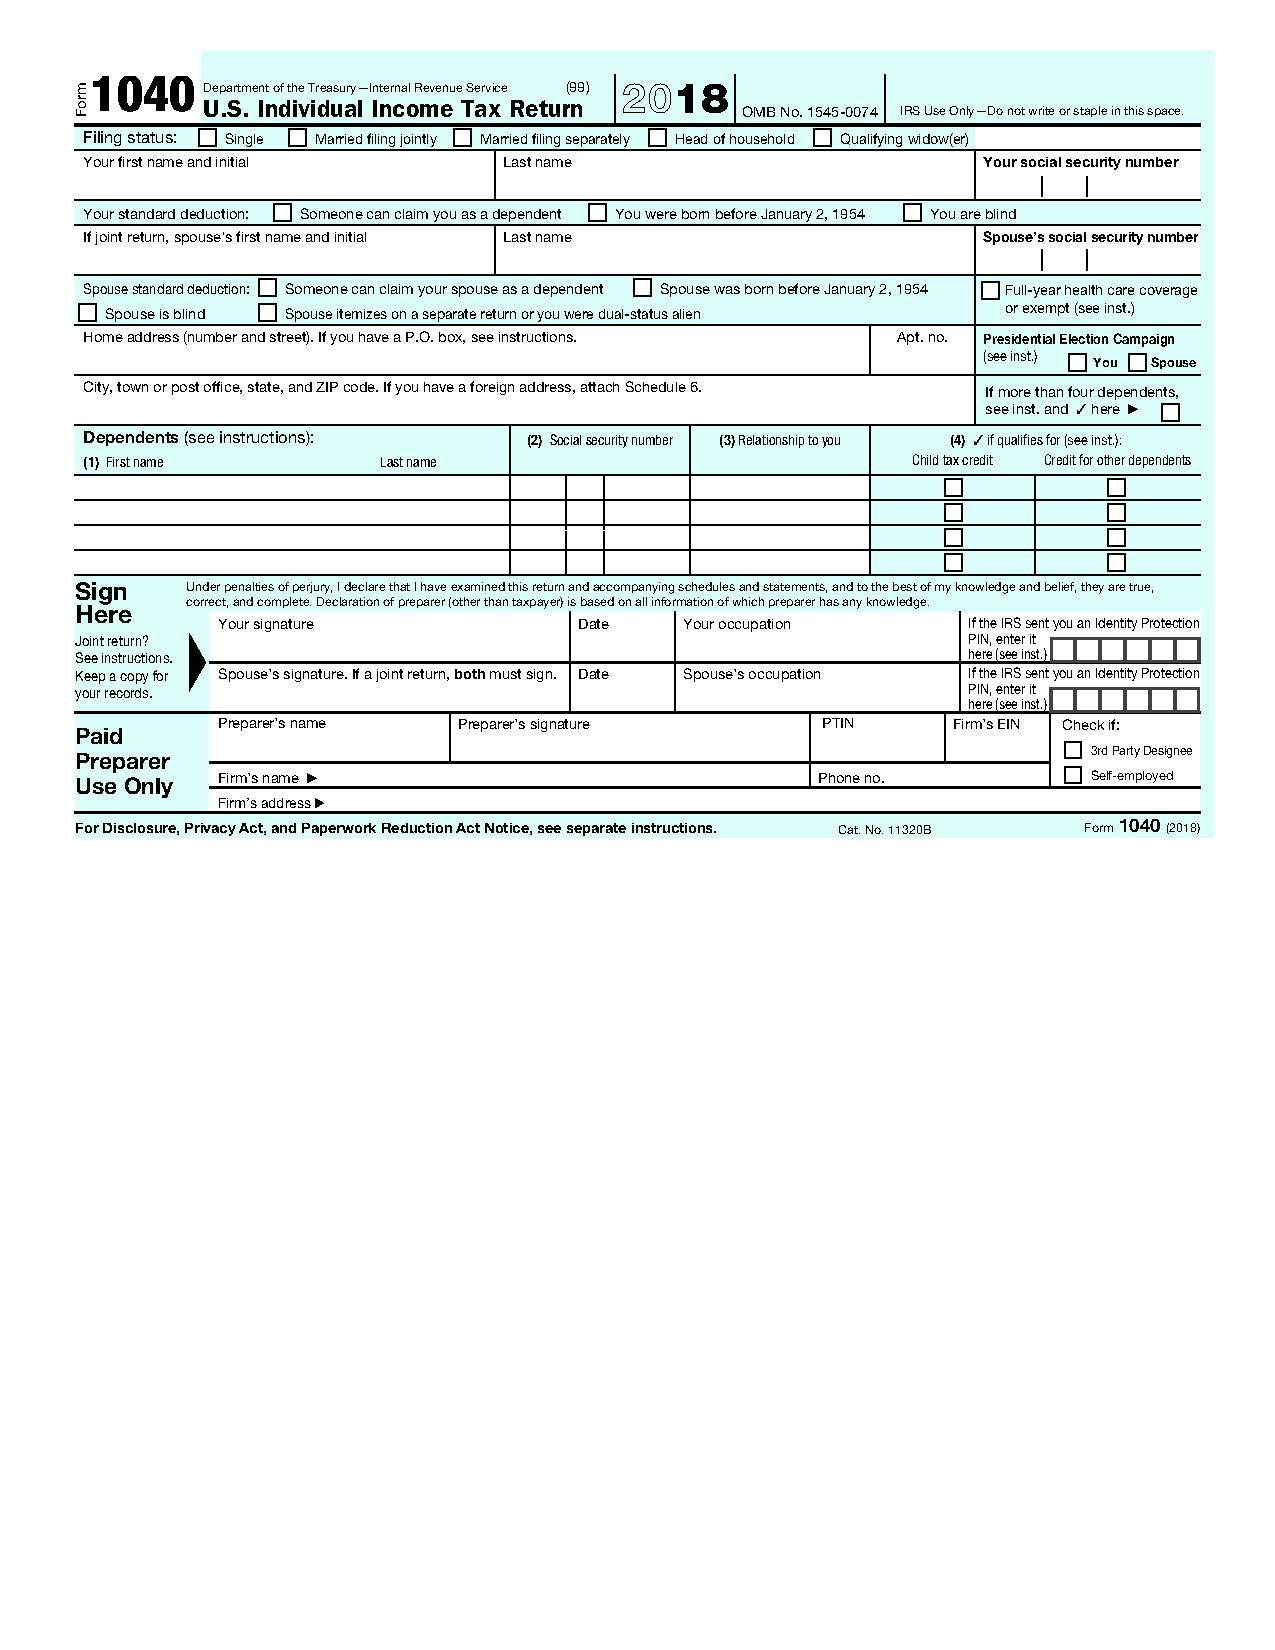 File Irs Form